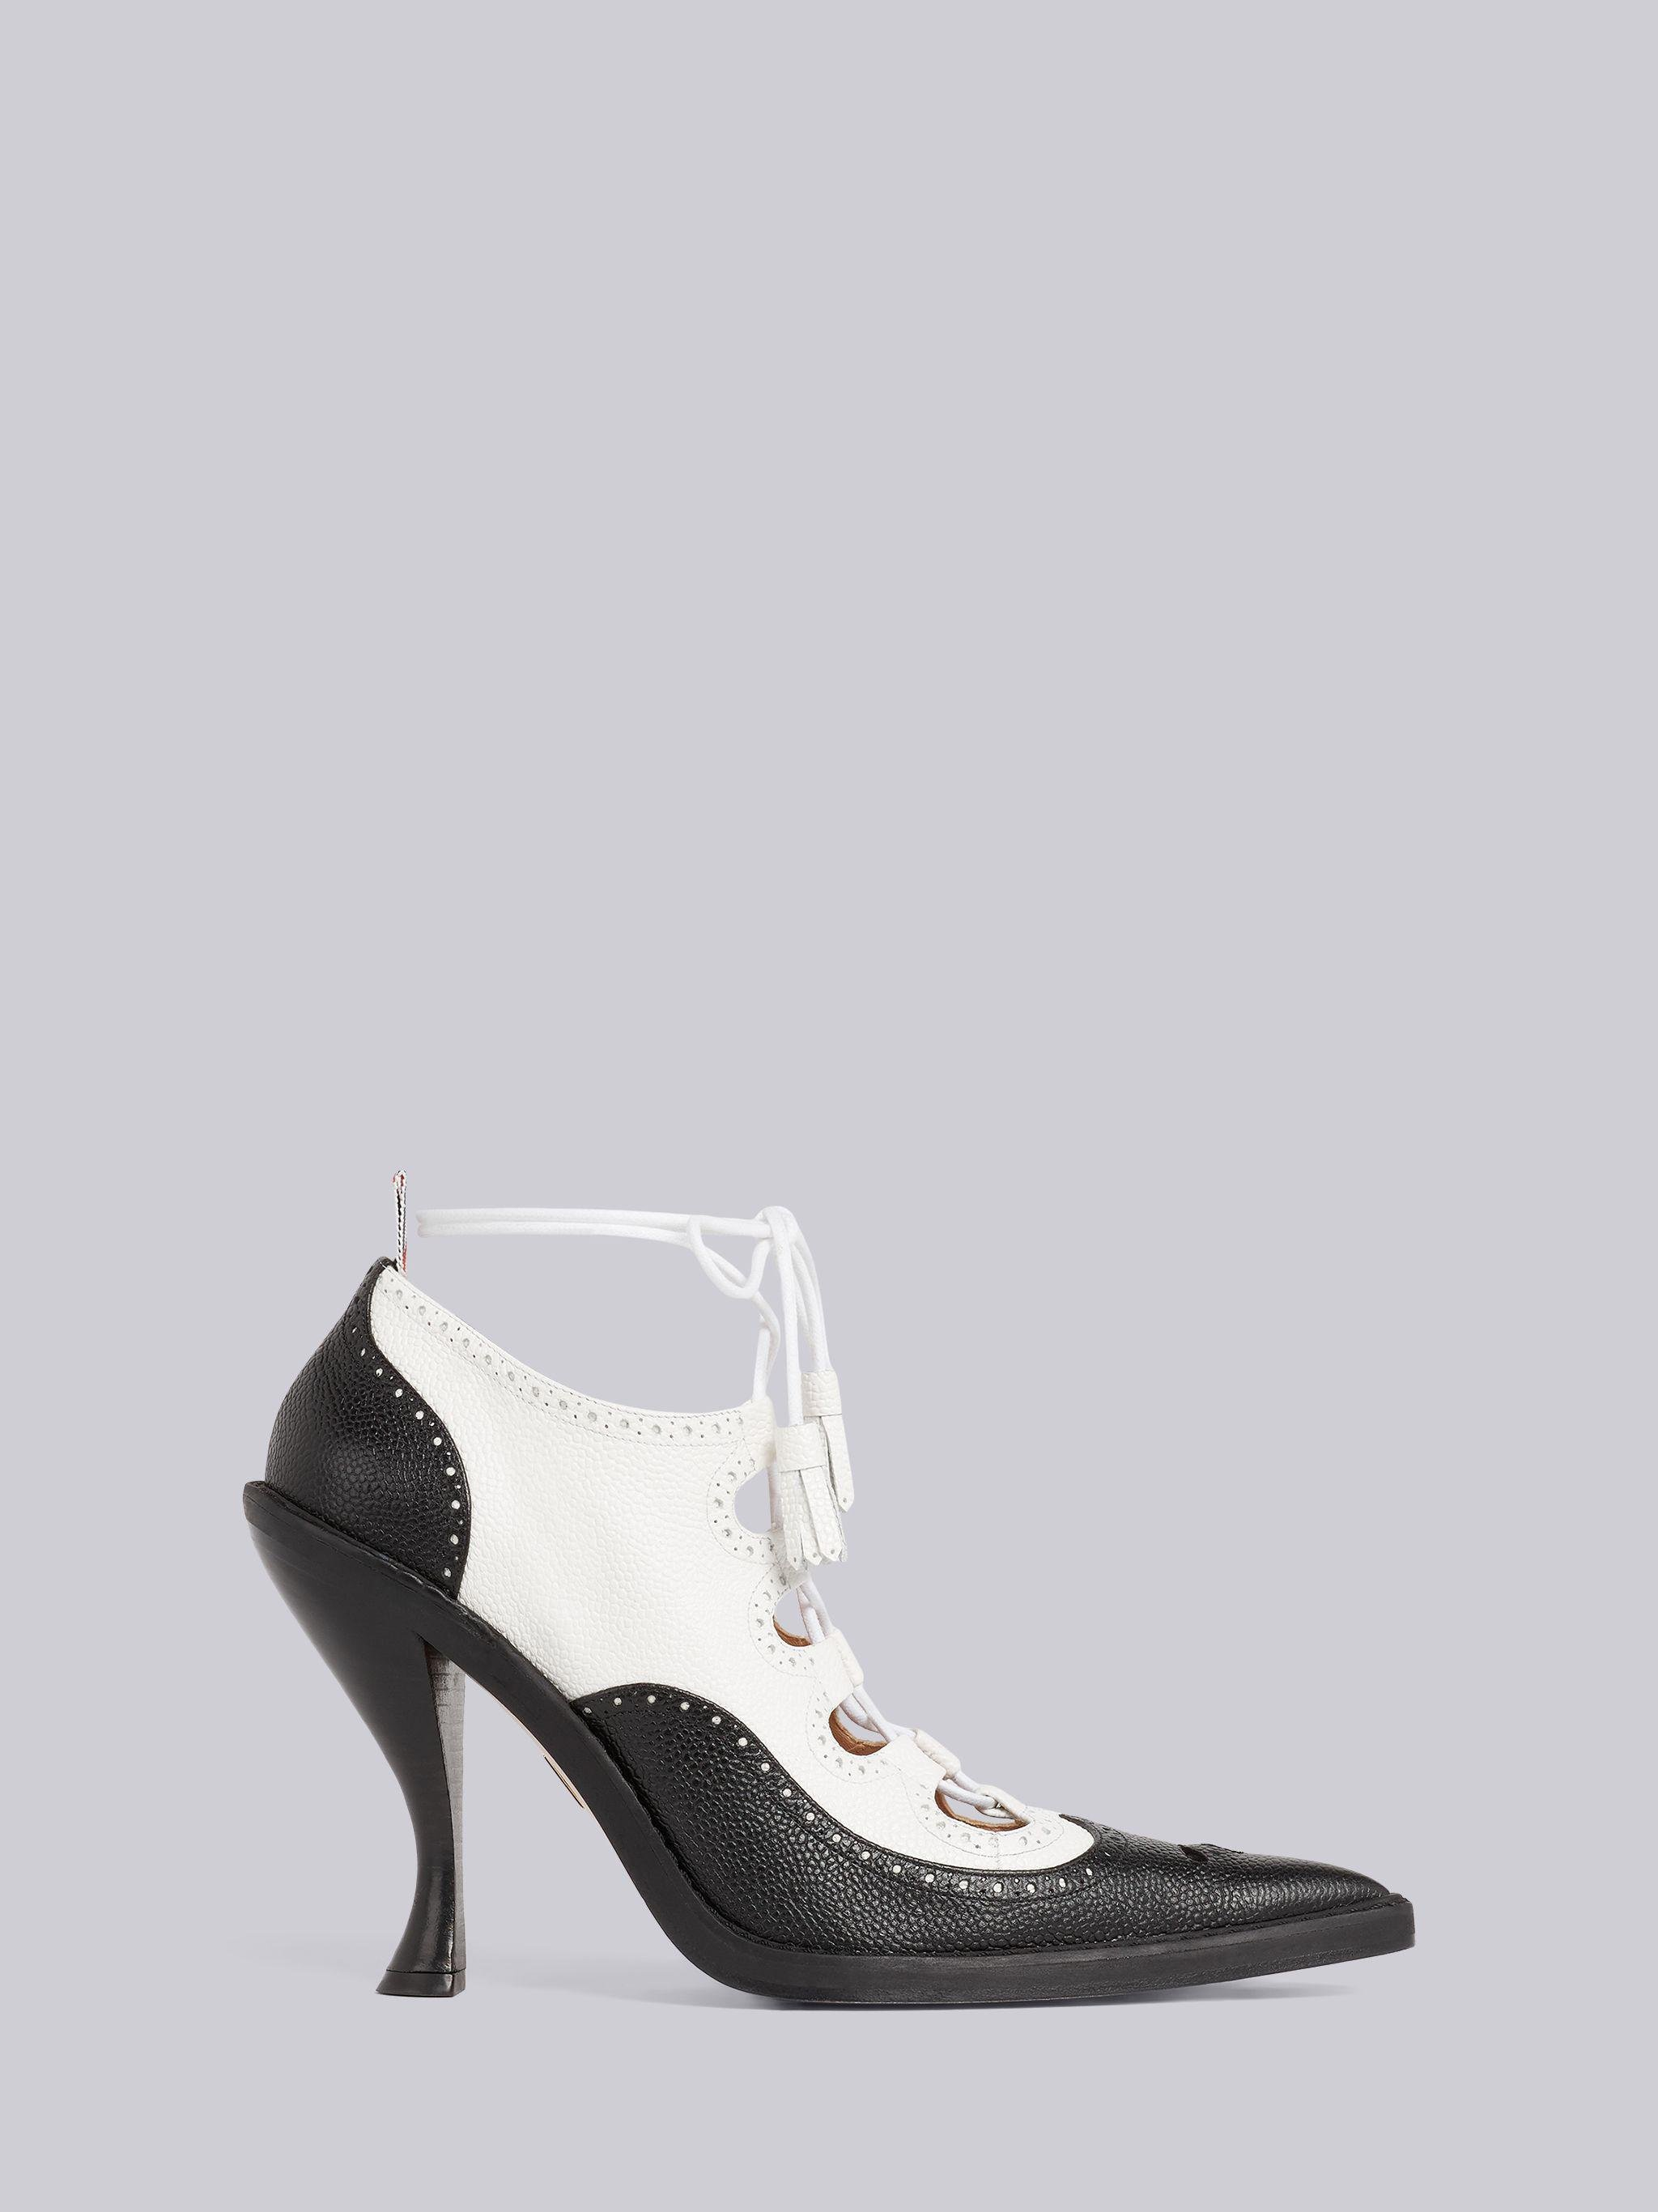 Black and White Pebbled Calfskin Ghillie Brogue Curved High Heel